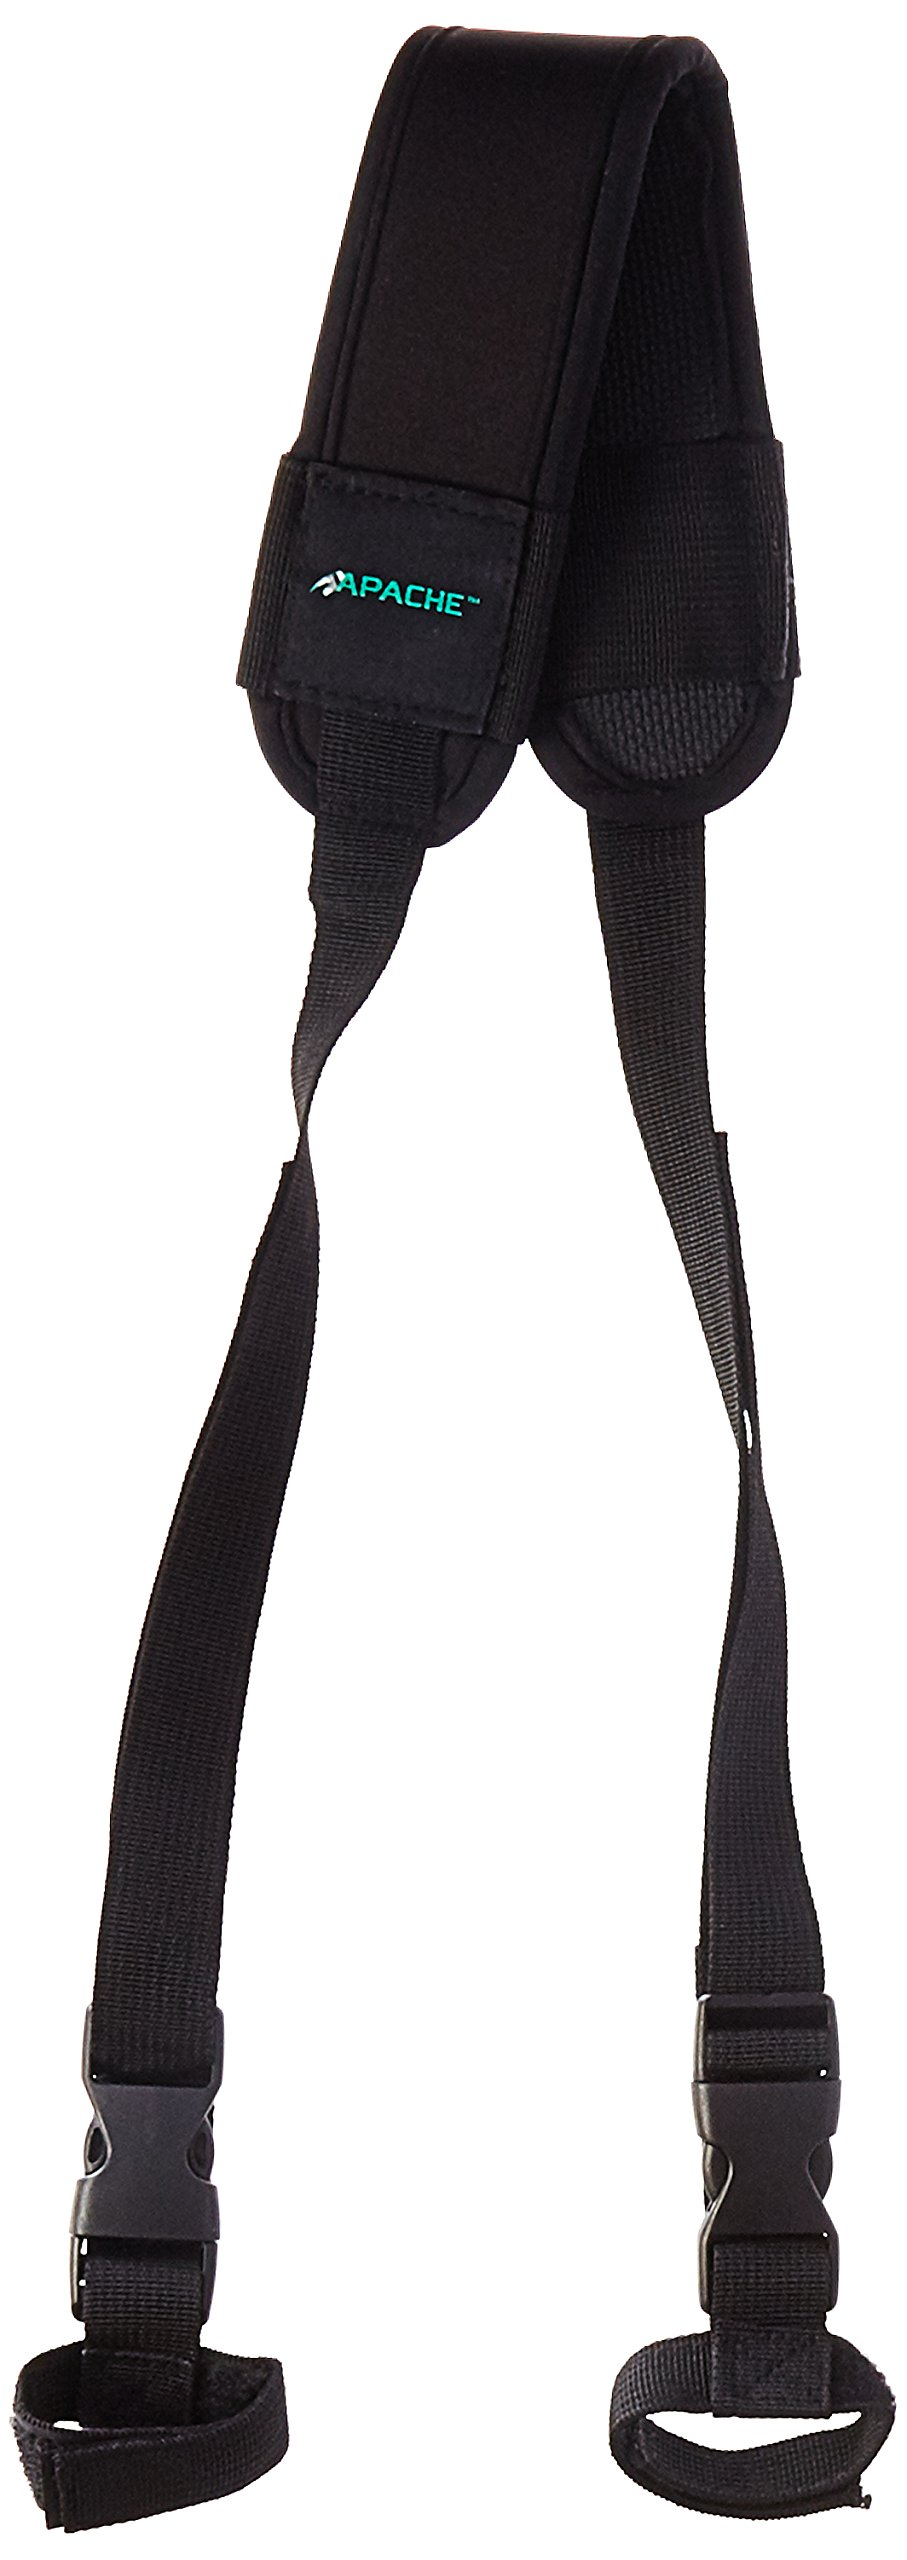 New Archery Products Apache Bow Sling Black